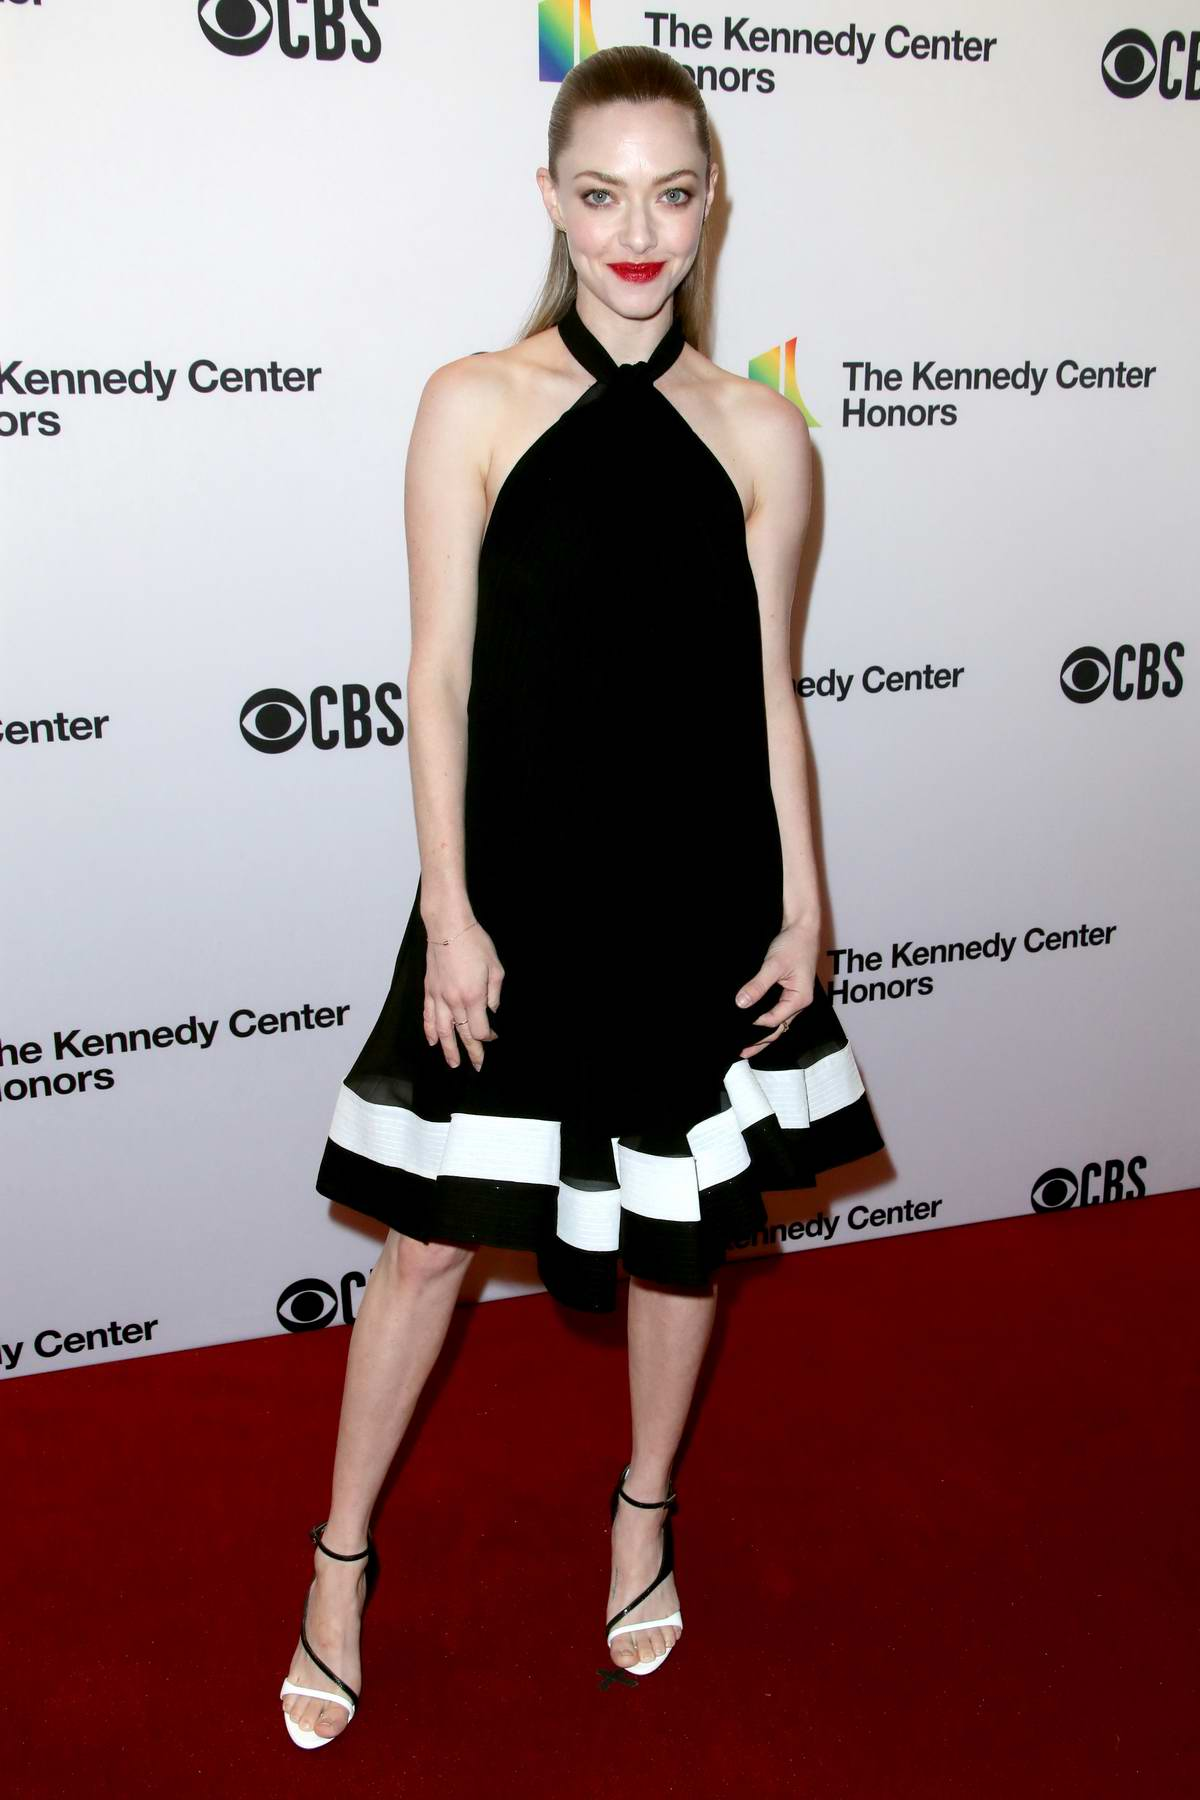 Amanda Seyfried attends 41st Annual Kennedy Center Honors in Washington D.C.